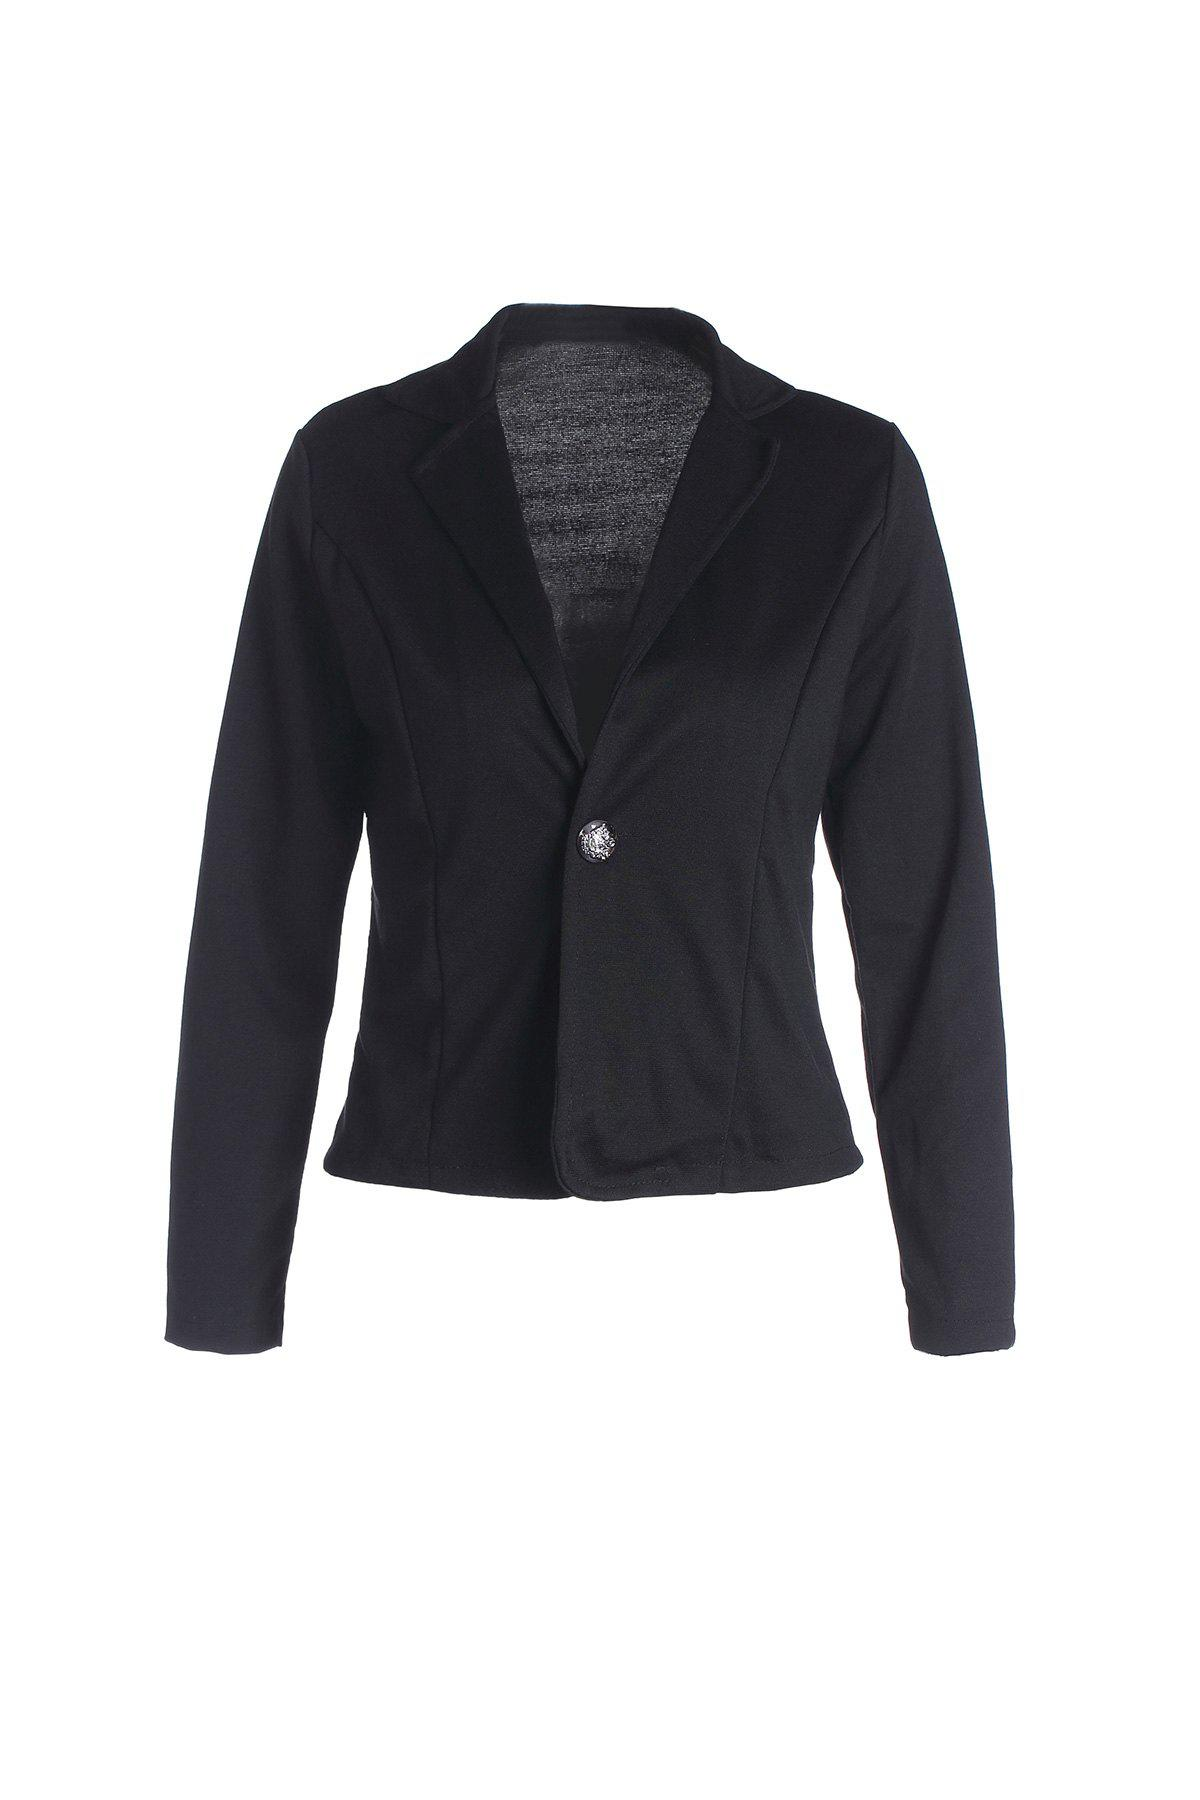 Casual Lapel Neck Solid Color Long Sleeve Plus Size Slimming Women's Blazer - BLACK L